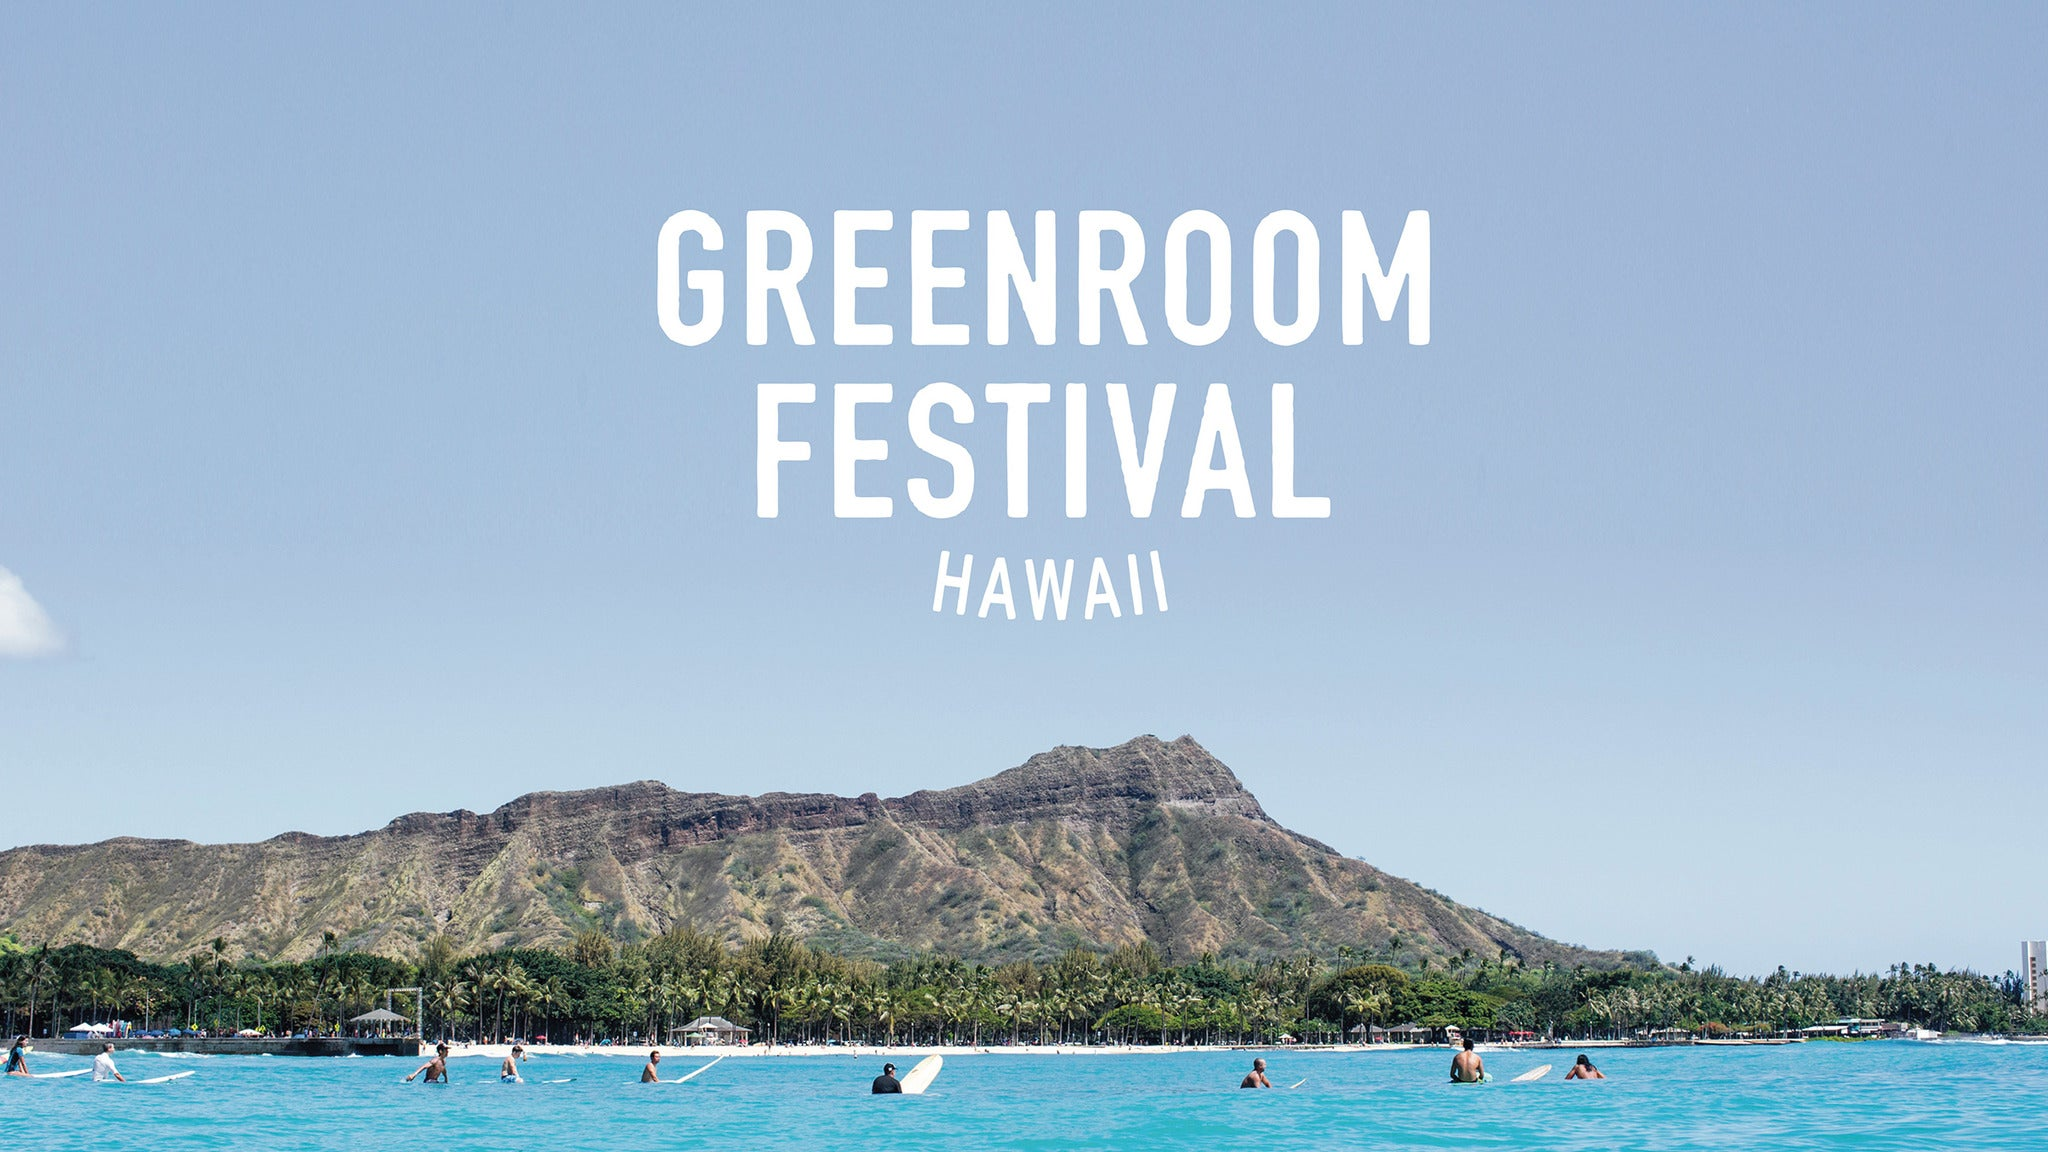 Greenroom Festival '18 at Waikiki Shell